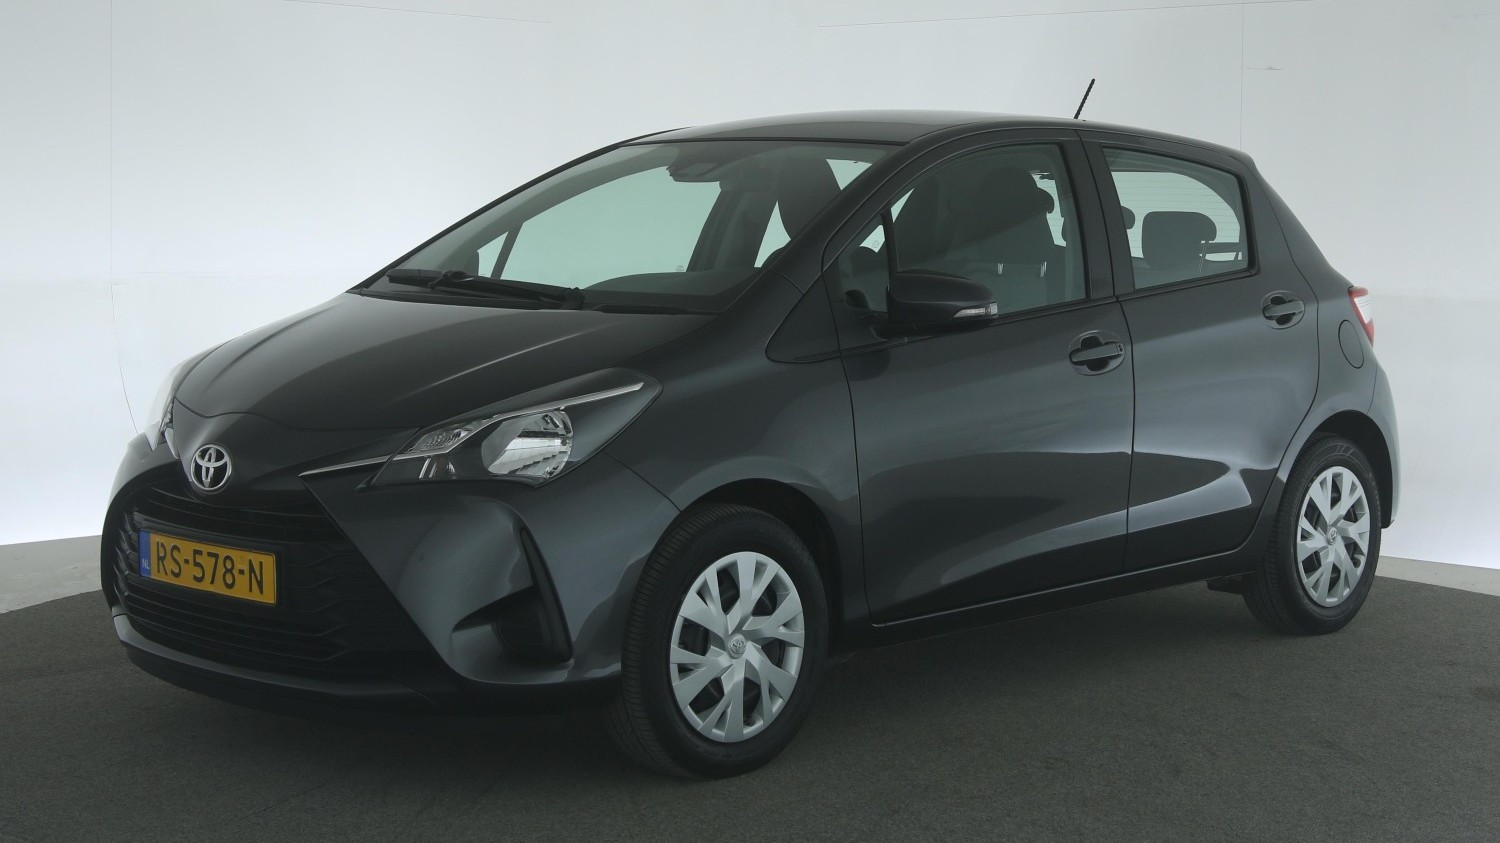 Toyota Yaris Hatchback 2018 RS-578-N 1